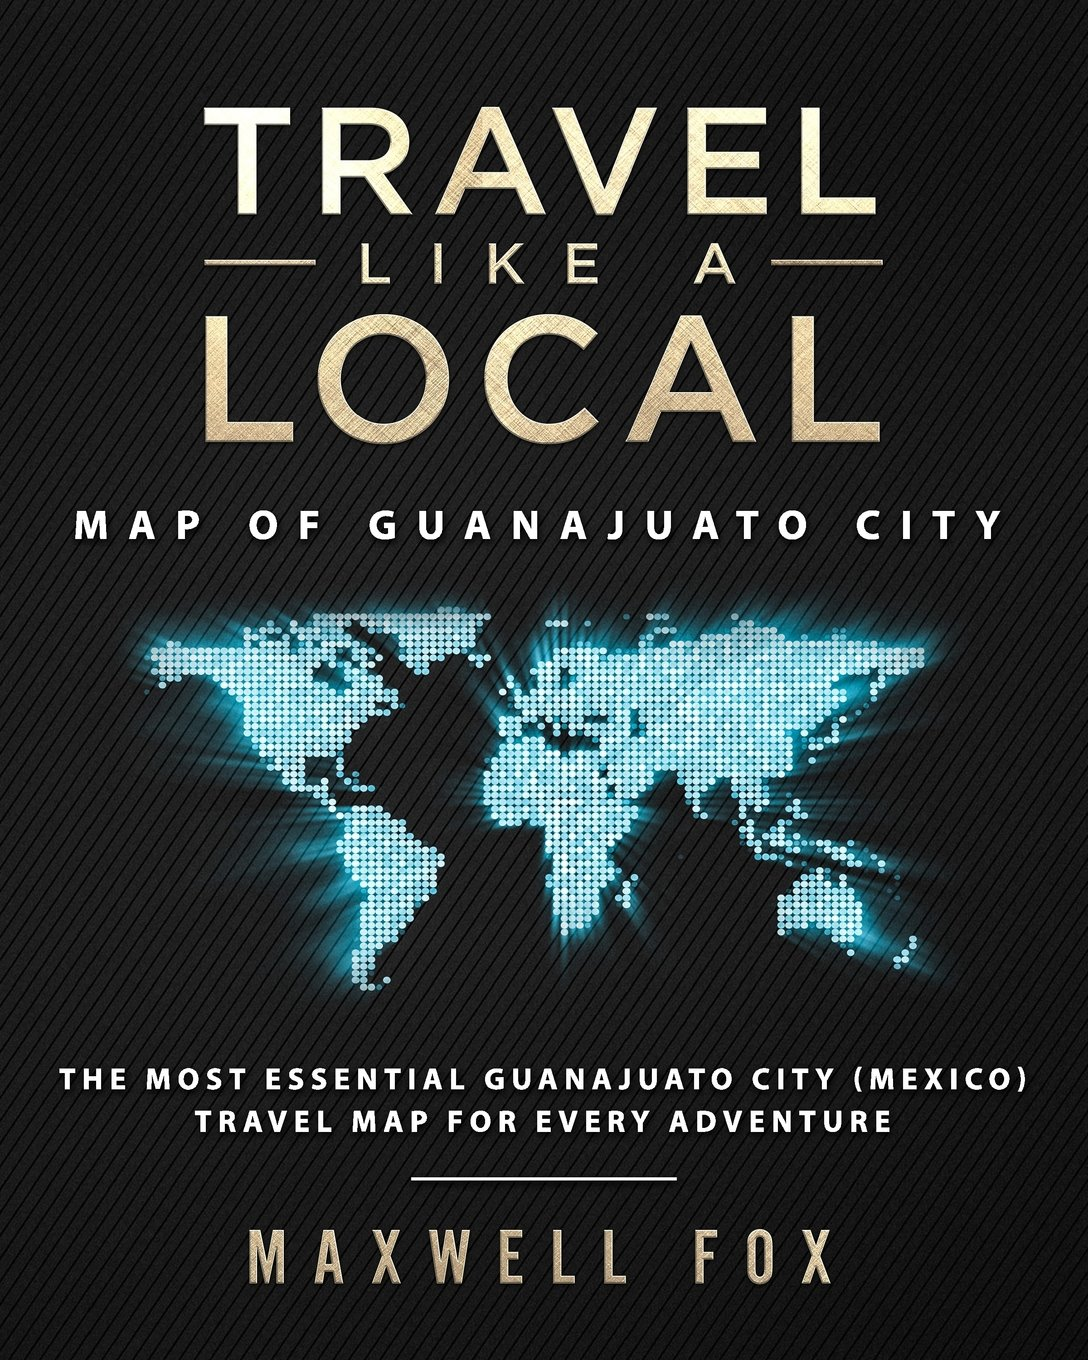 Travel Map for Every Adventure Map of Mexico City: The Most Essential Mexico City Travel Like a Local Mexico